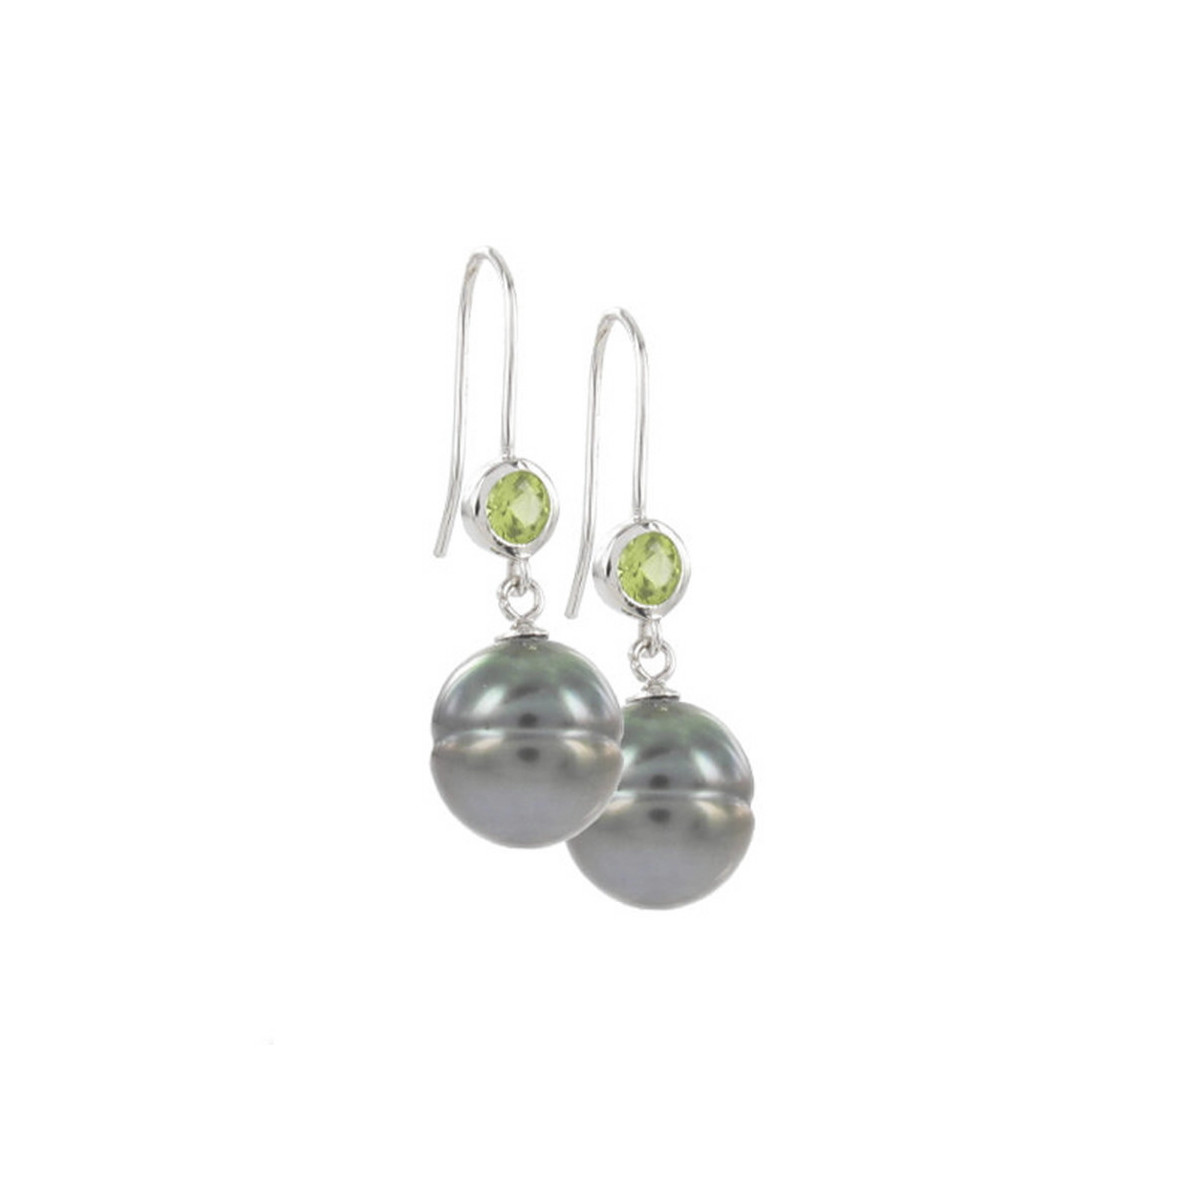 STERLING SILVER PERIDOT AND PEARL